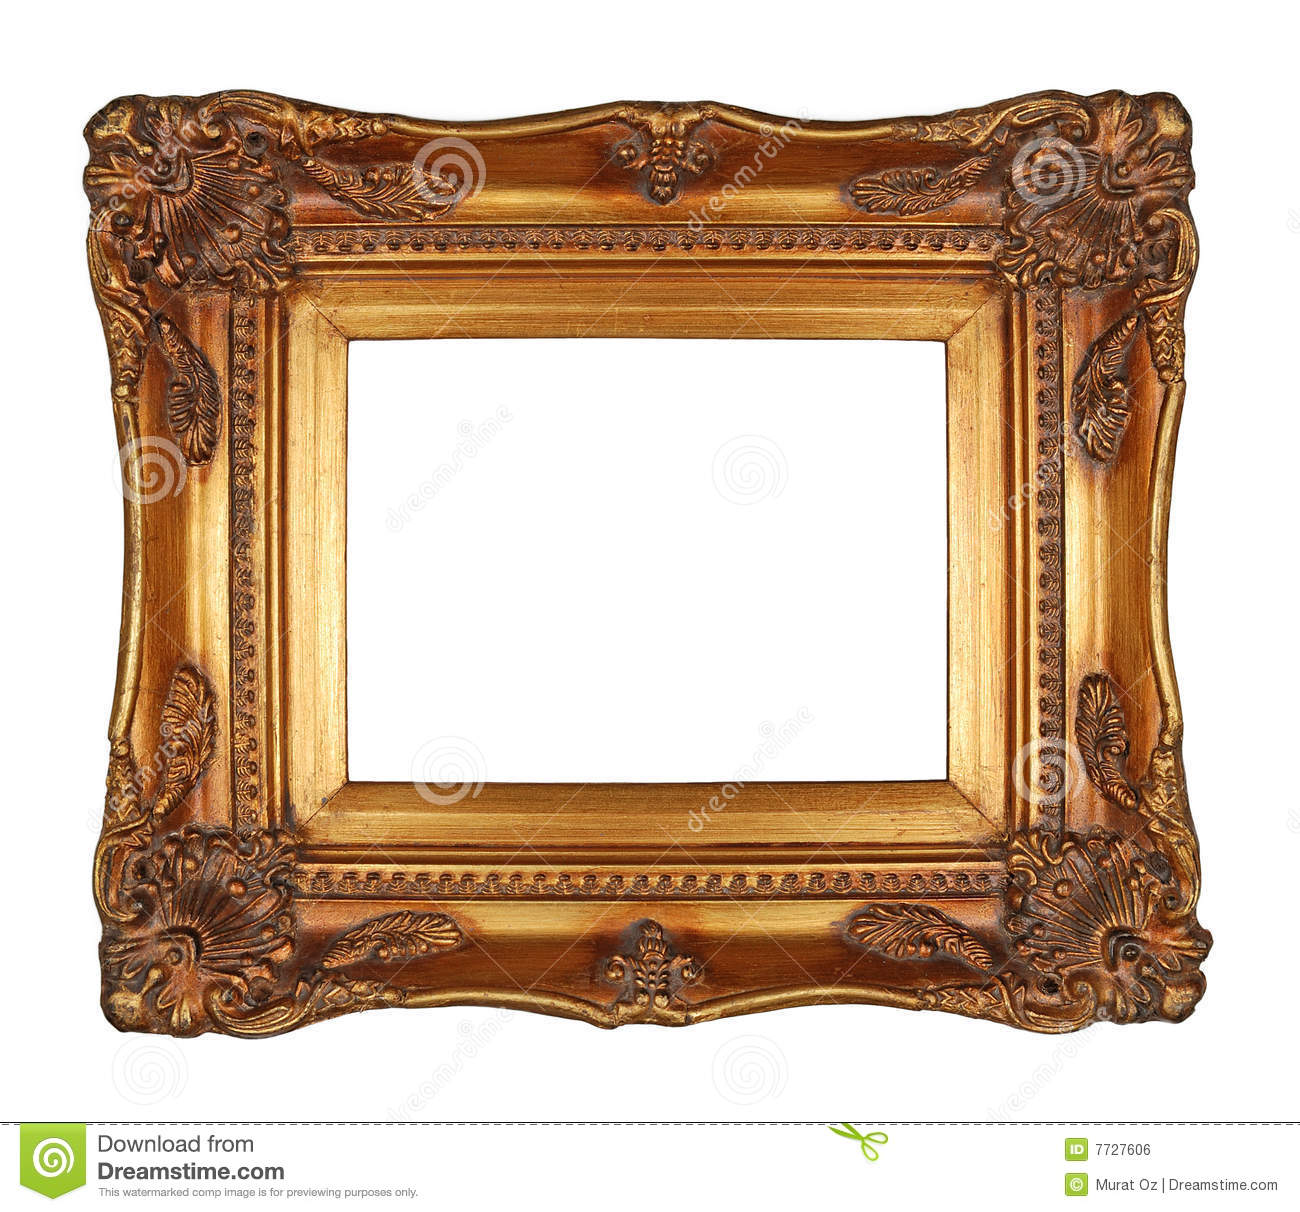 Antique Gold Frame stock photo. Image of paintings, ornate - 7727606